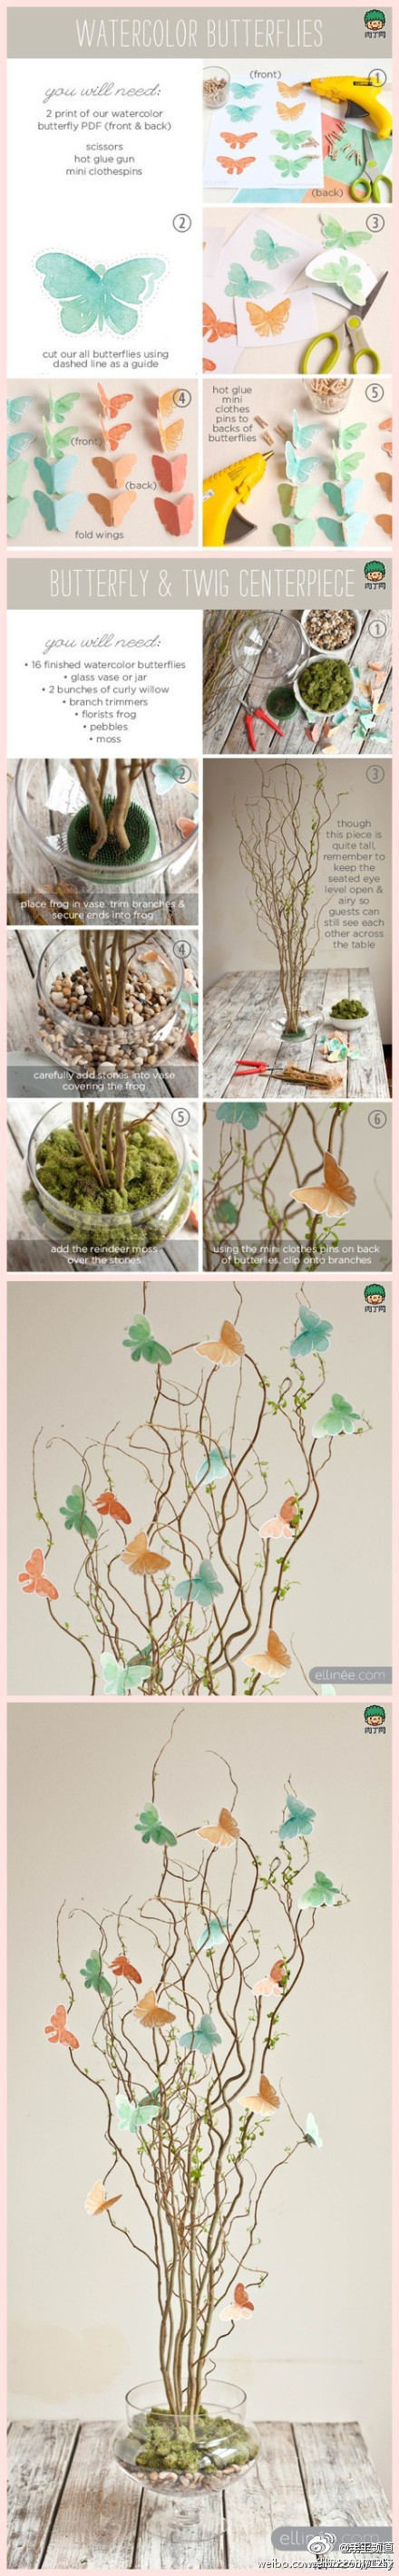 Creative fake flower production - with a branch table flowers and paper butterflies DIY tutorial (rpm)